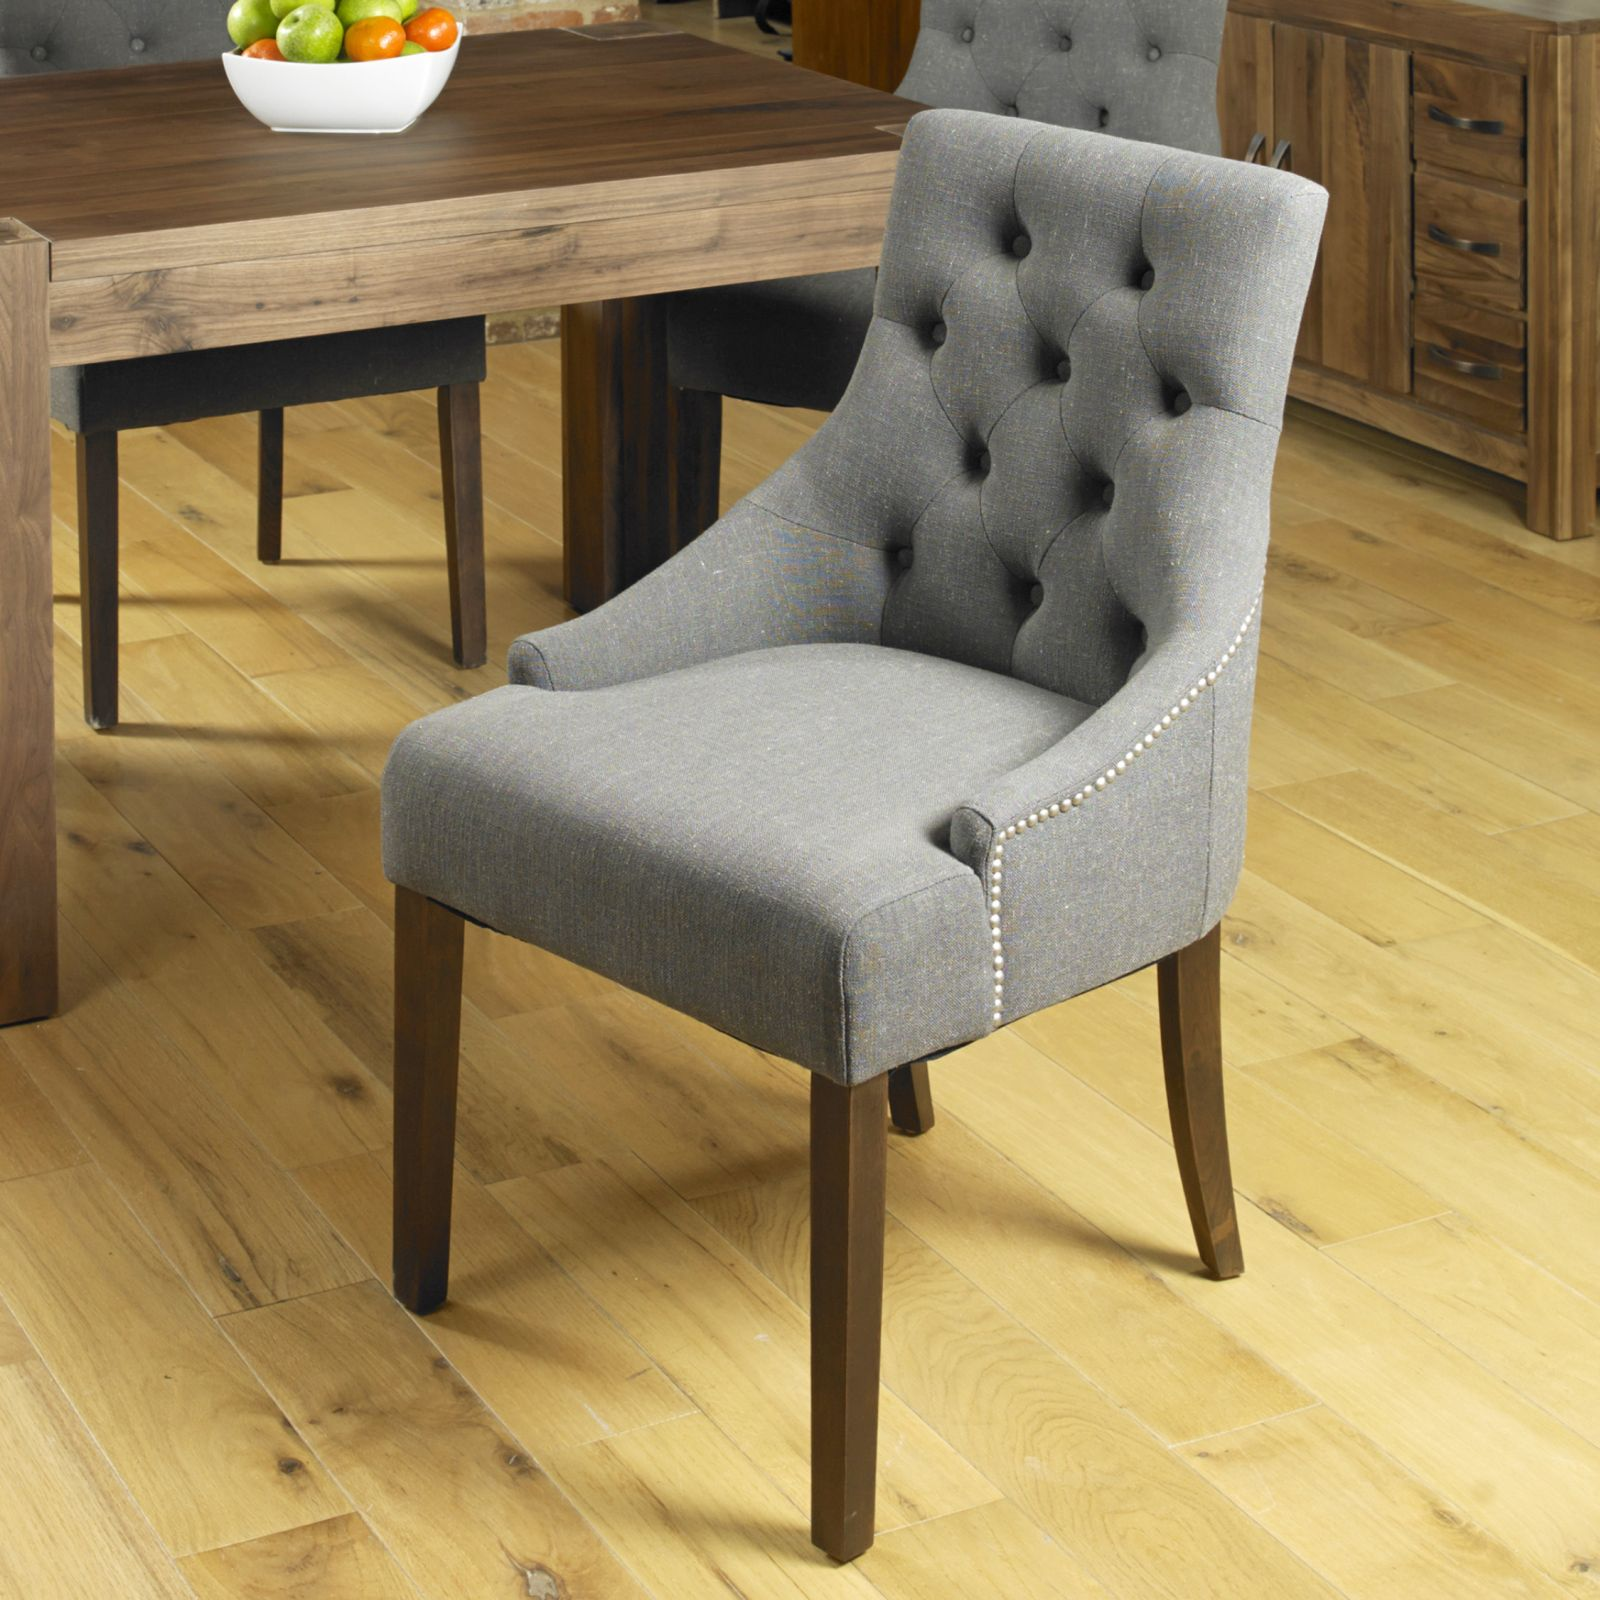 Sierra solid dark wood furniture set of four upholstered ...